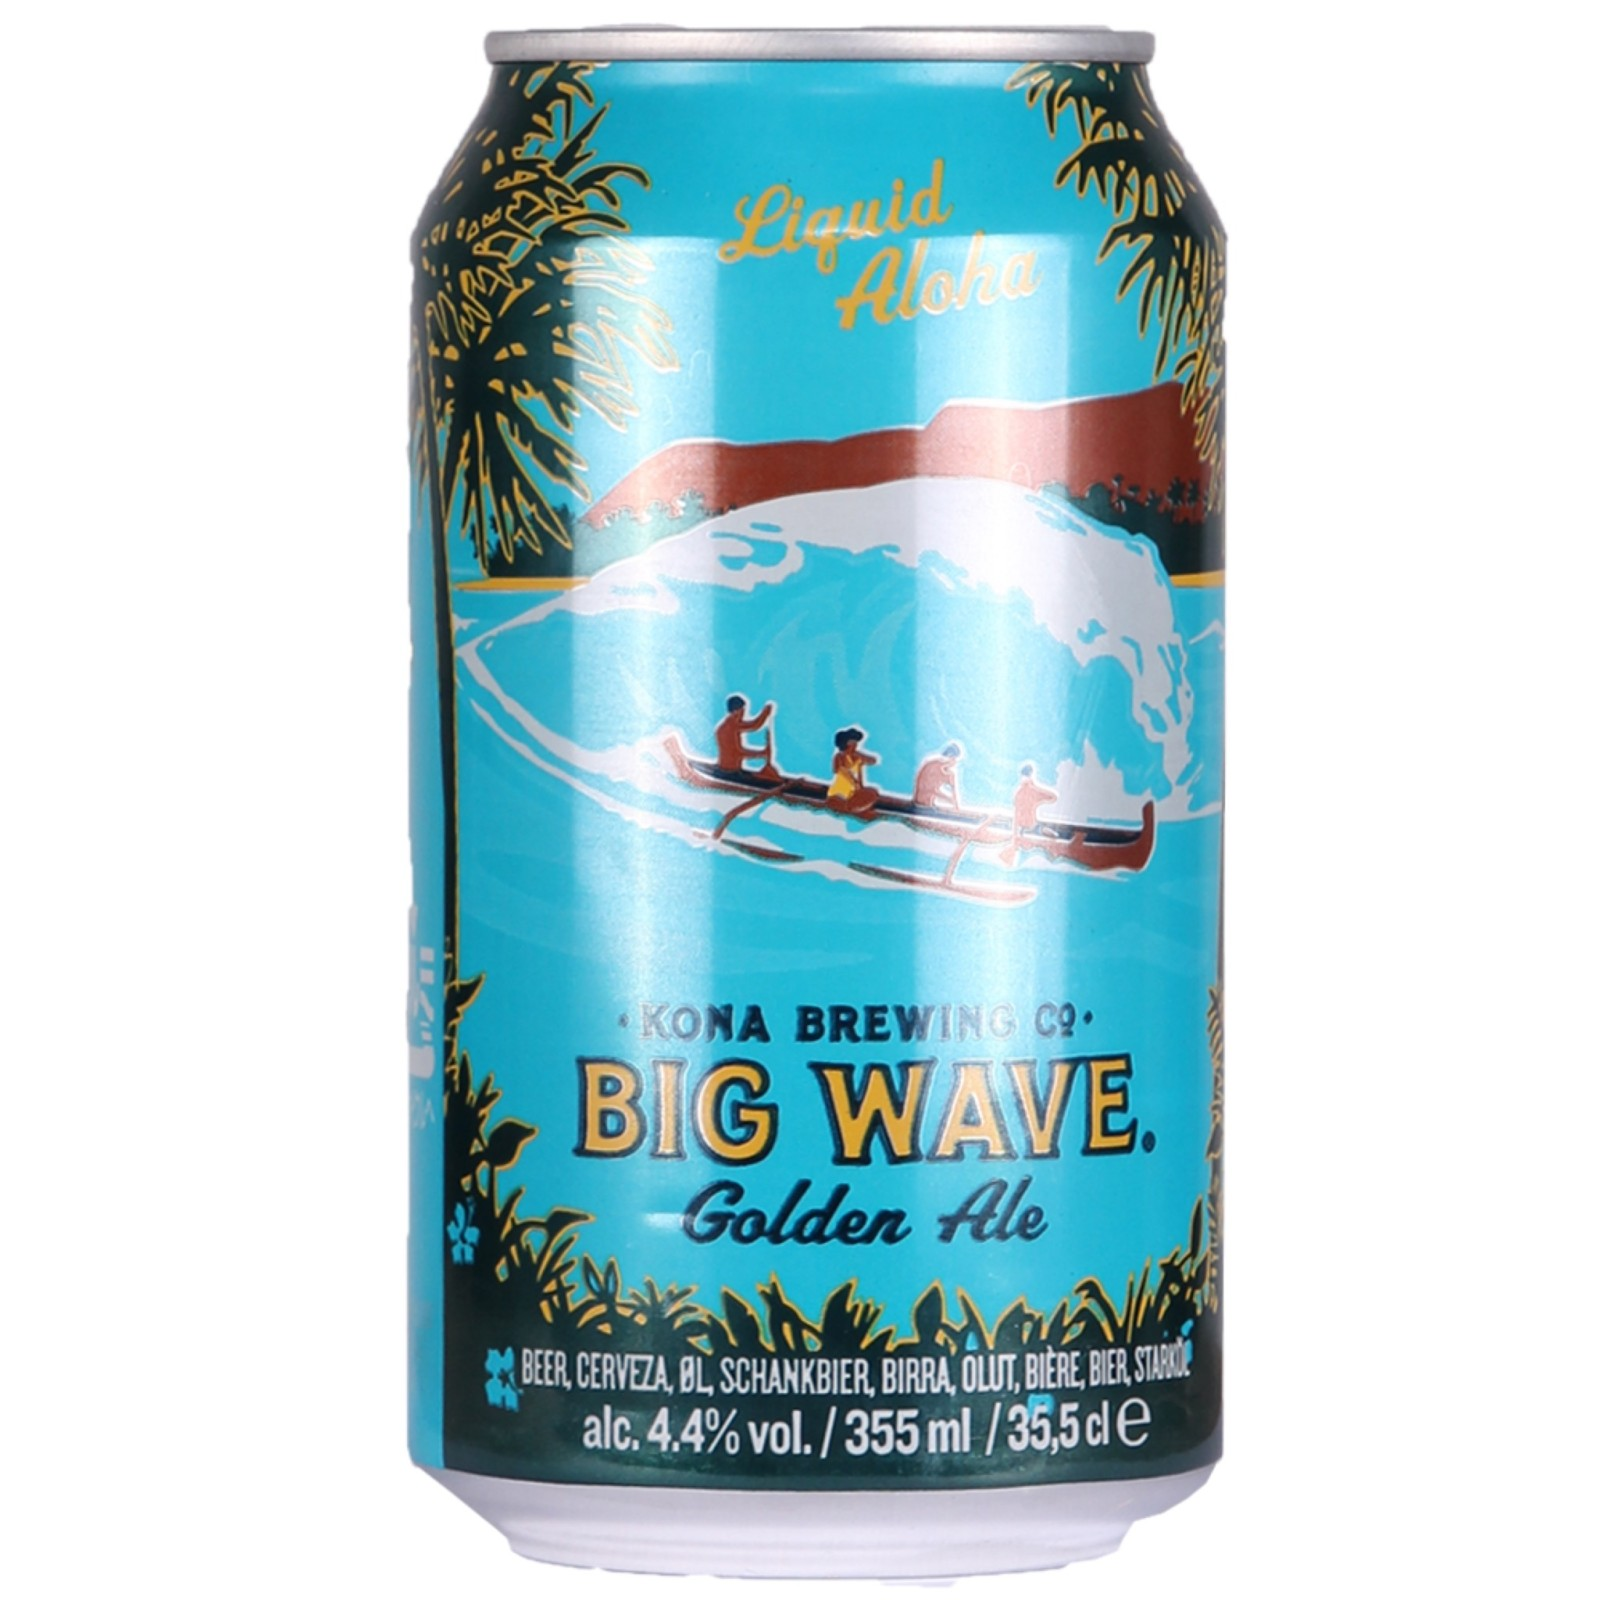 Big Wave Golden Ale 4.4% 355ml Kona Brewing